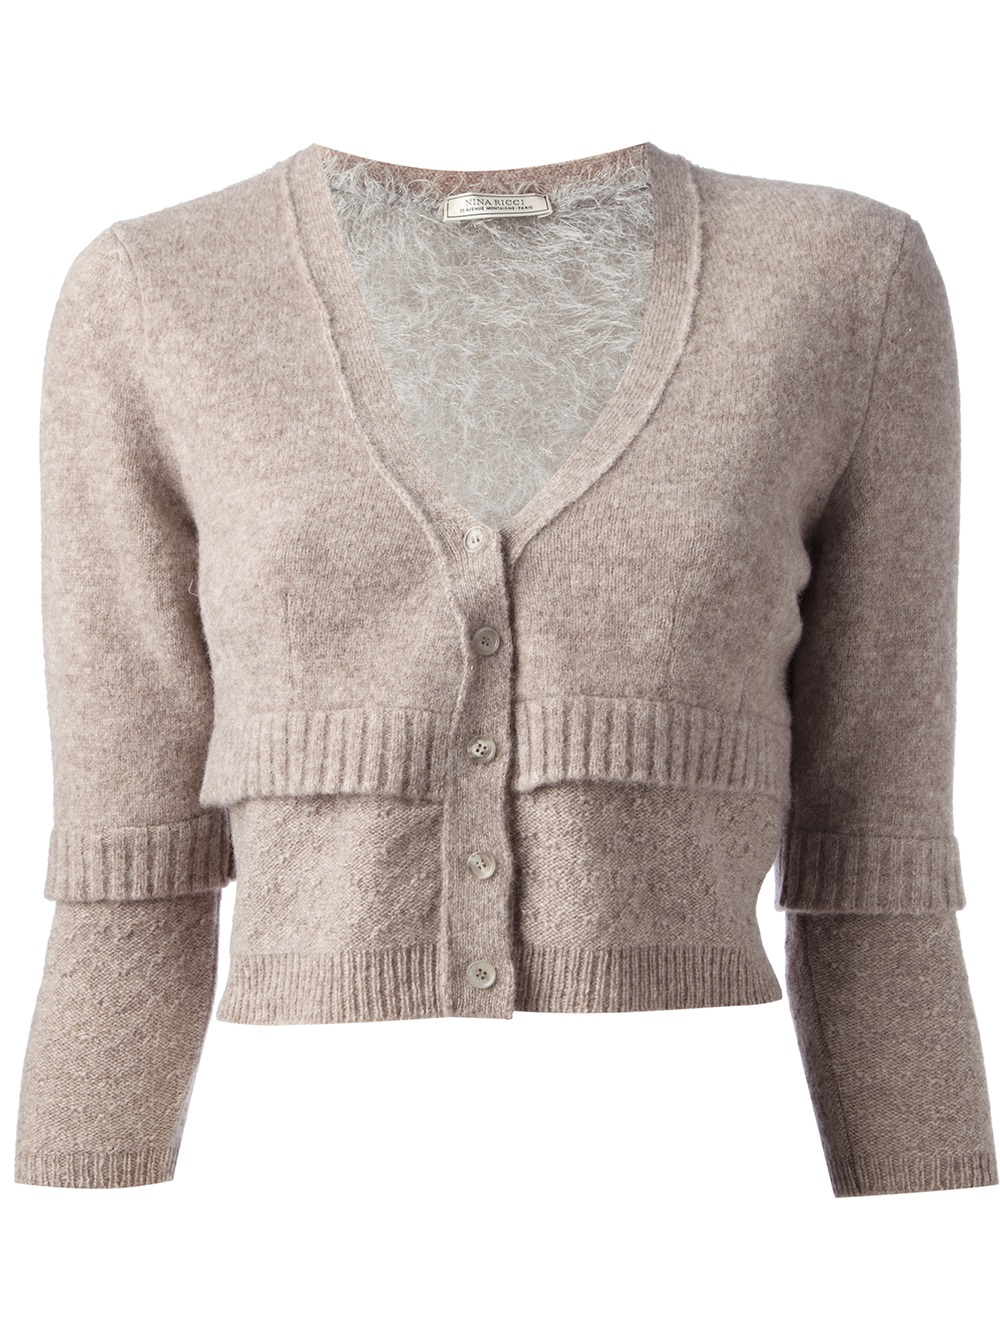 Nina ricci Cropped Cardigan in Natural | Lyst